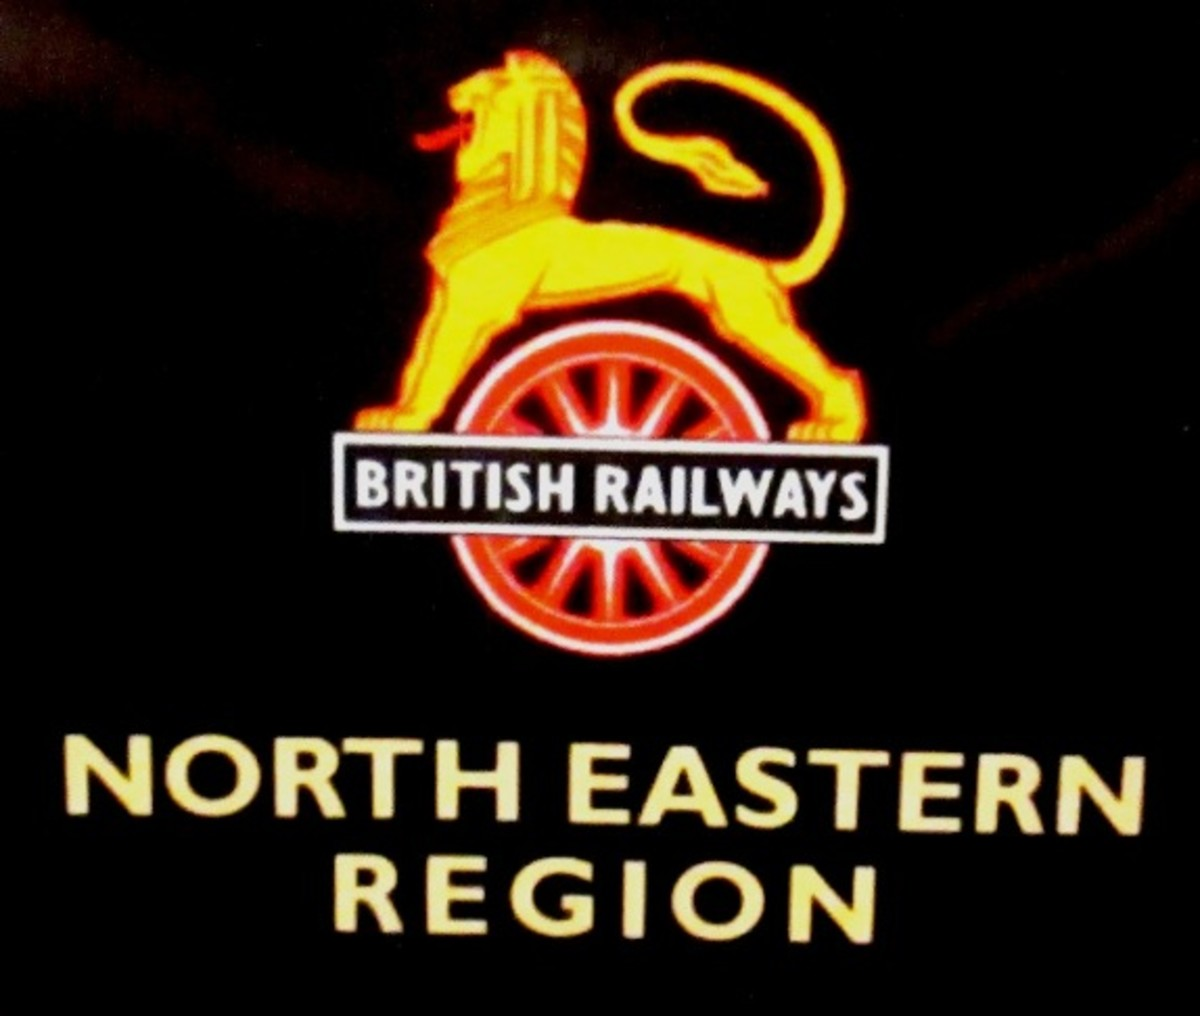 British Railways North Eastern Region... almost back where we started.